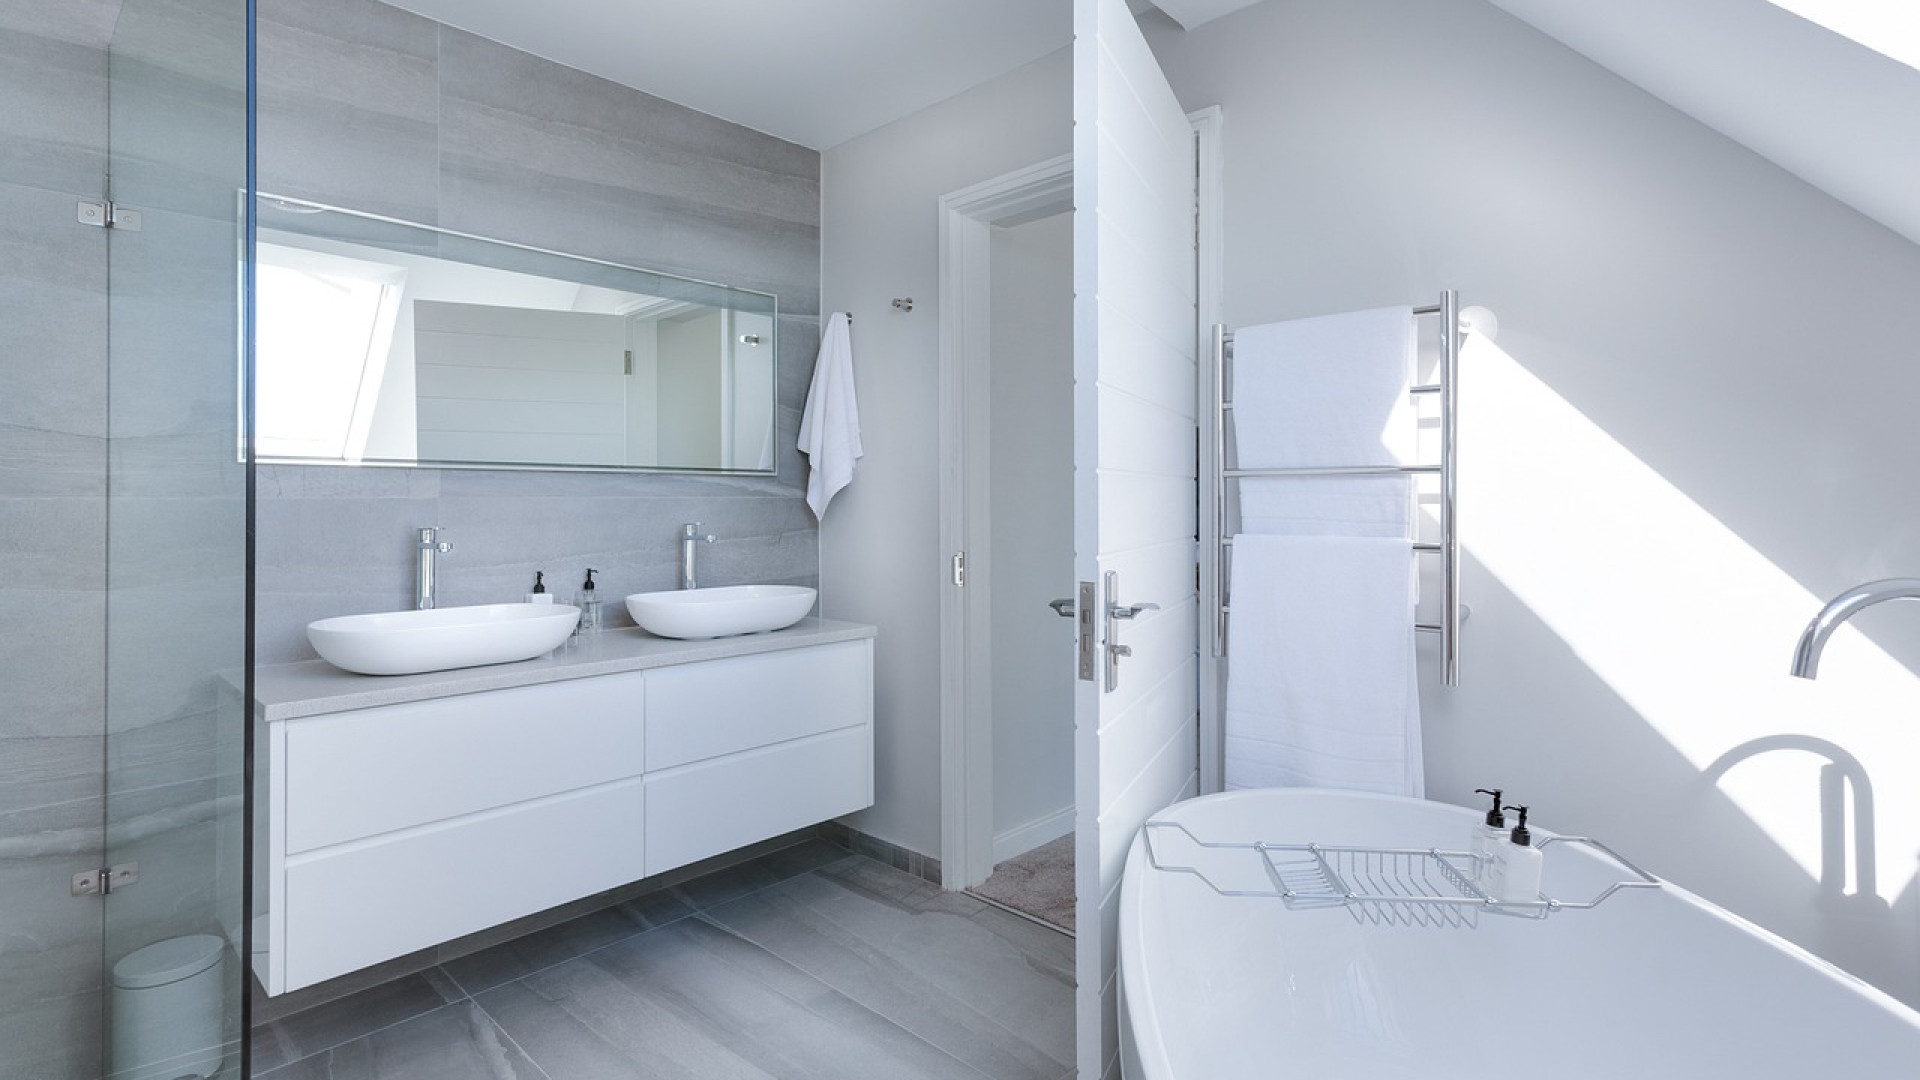 Salle de bain : simple ou double vasque ?